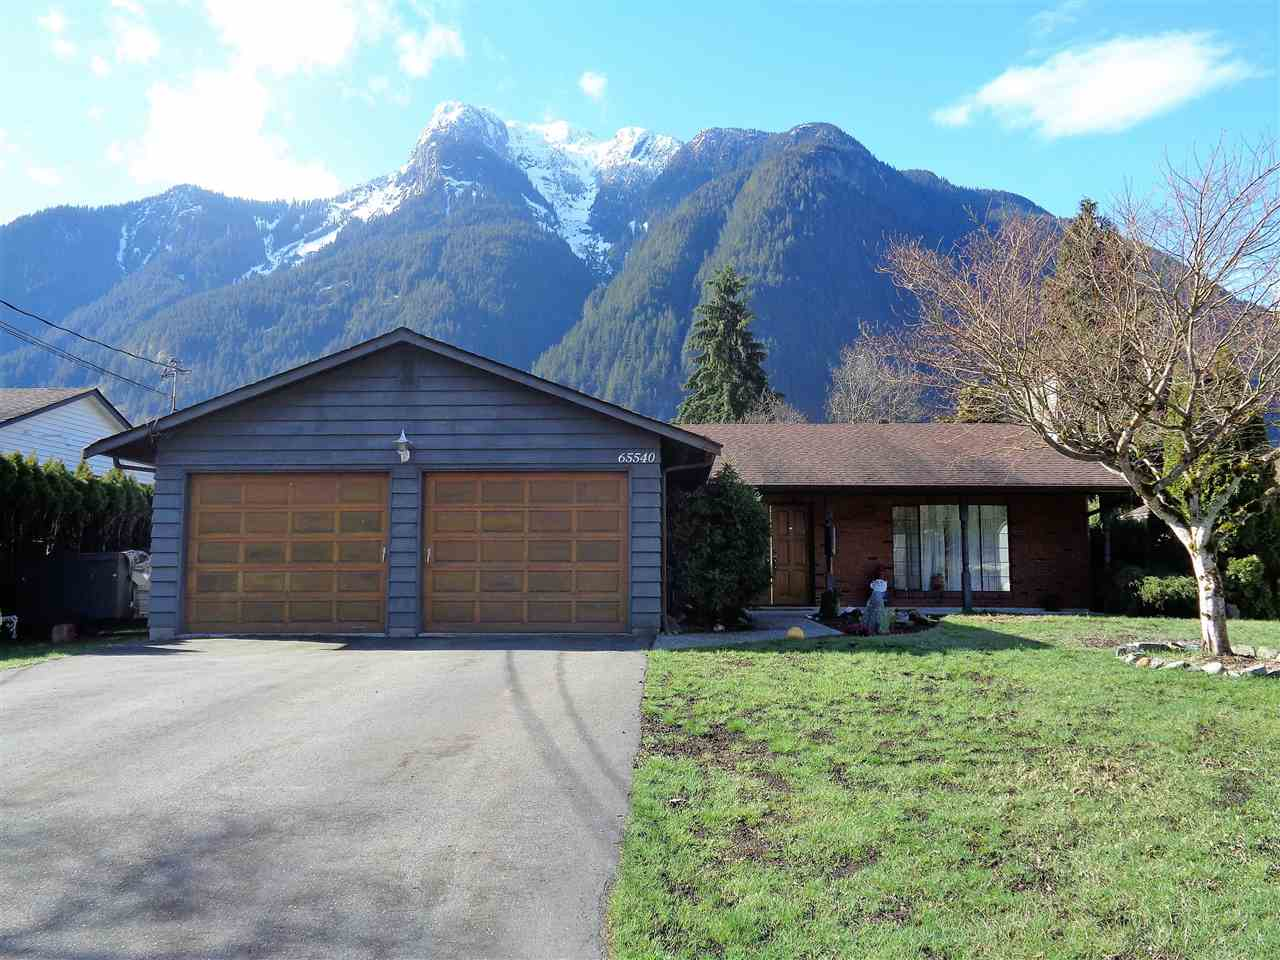 Solid 3 bedroom , 2 bath rancher on large level lot in desired prestigious Kawkawa Lake area, large 2 car garage and RV parking large country kitchen & double door entry. Yard is very private & features large covered patio, fencing & storage shed. Great curb appeal & mountain views, recent extensive interior renovation including Italian slate flooring throughout, new furnace, new appliances, new on demand hot water, gas dryer, new countertops, heated crawl space, new lights and more! Close to all amenities and within walking distance to shopping, grocery stores, schools, Fraser Valley Hospital, Restaurants, Kawakawa Lake, Coquihalla River, Thacker Regional Park, The Othello Tunnel Trails and the mighty Fraser River, peaceful and established neighborhood with wonderful neighbors.